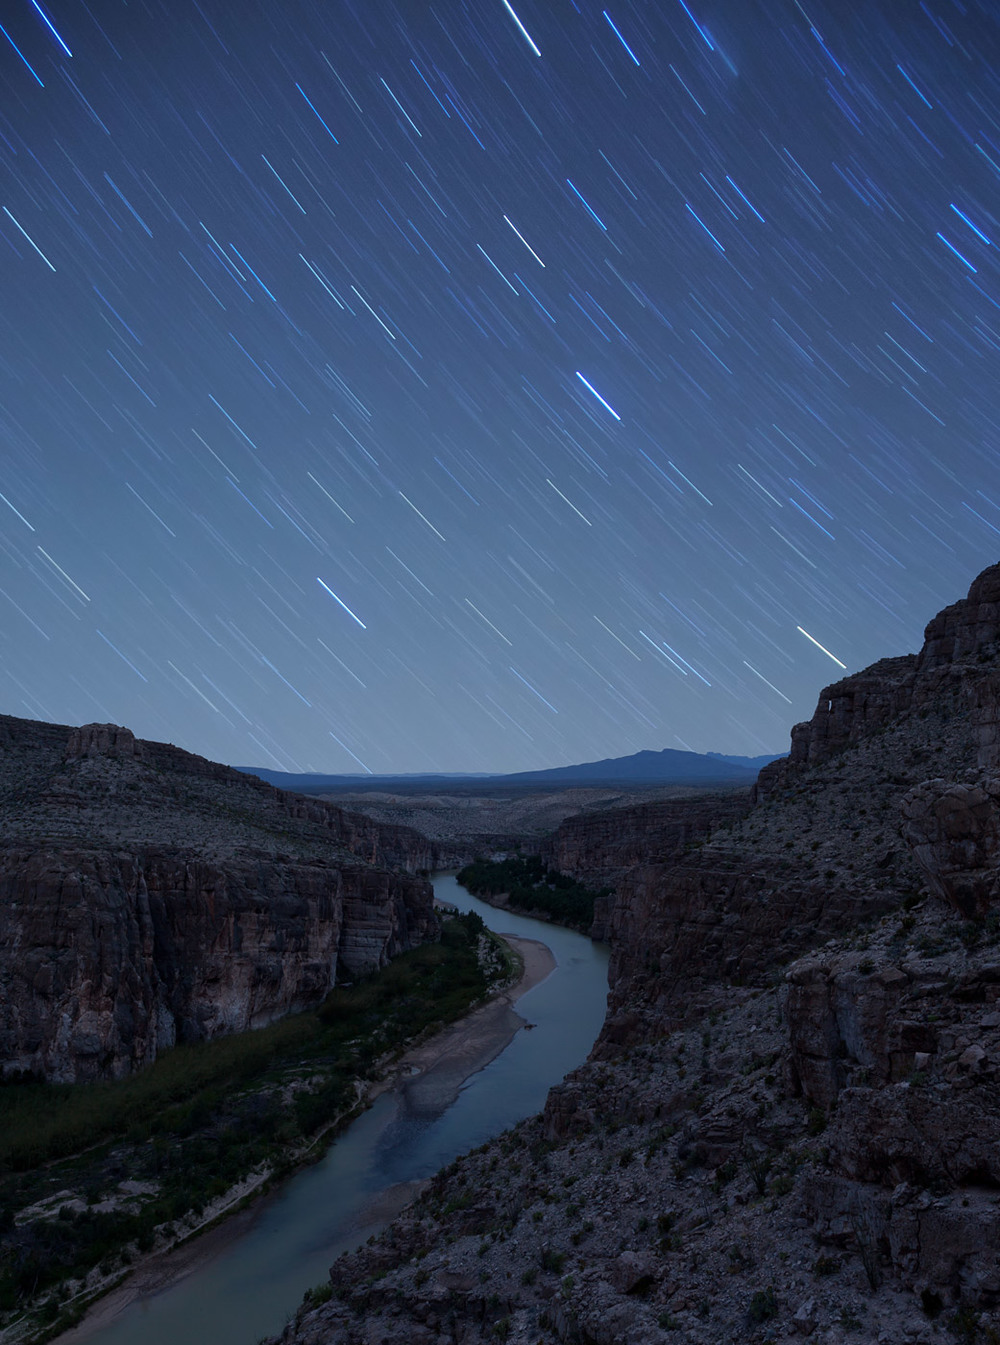 Big-Bend-National-Park-ABP-Hot-Springs-Canyon-Stars.jpg